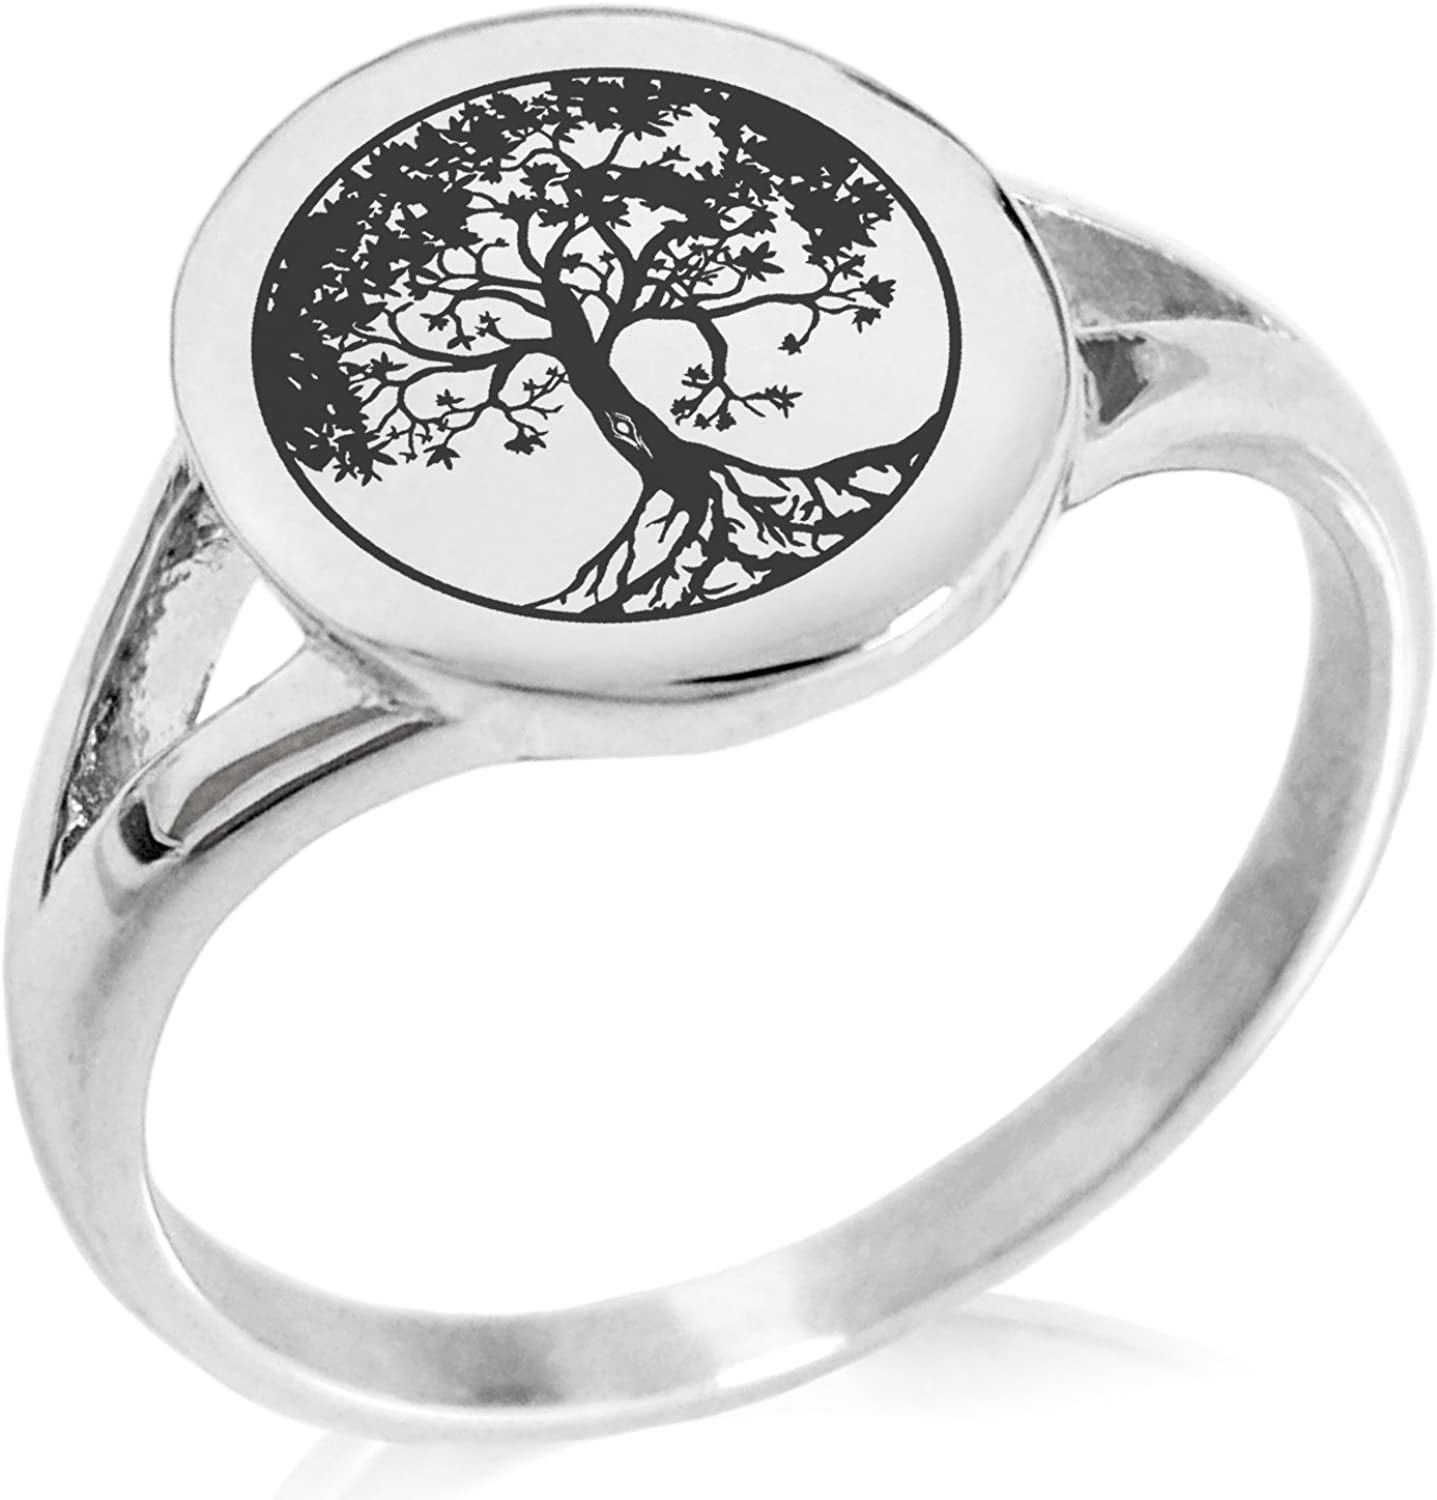 Tioneer Stainless Steel Tree of Life Symbol Minimalist Oval Top Polished Statement Ring